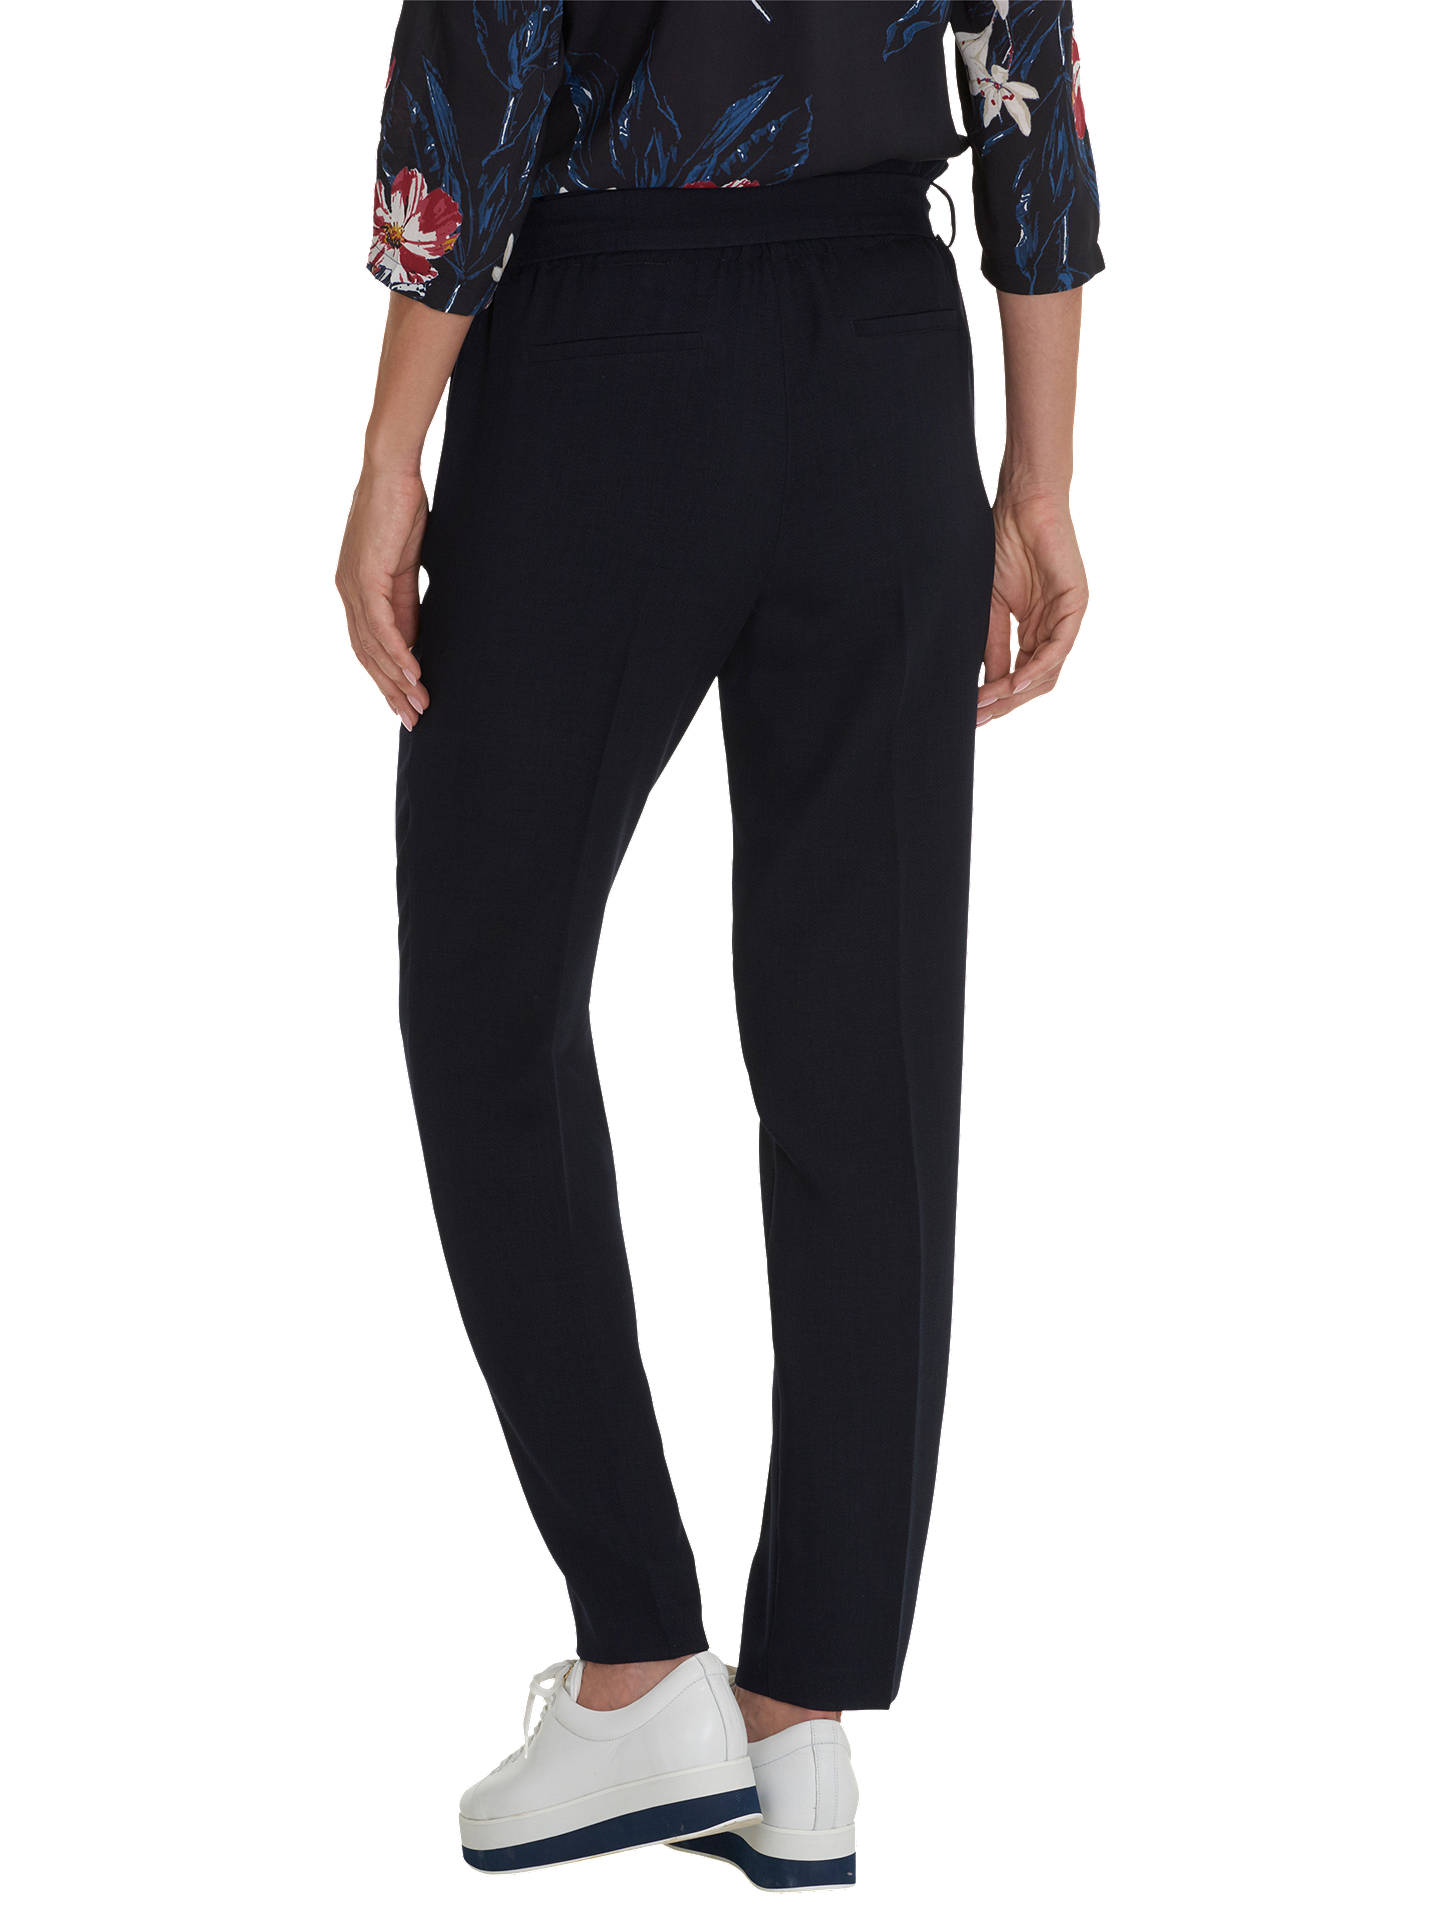 BuyBetty & Co. High Waisted Trousers, Night Sky, 10 Online at johnlewis.com